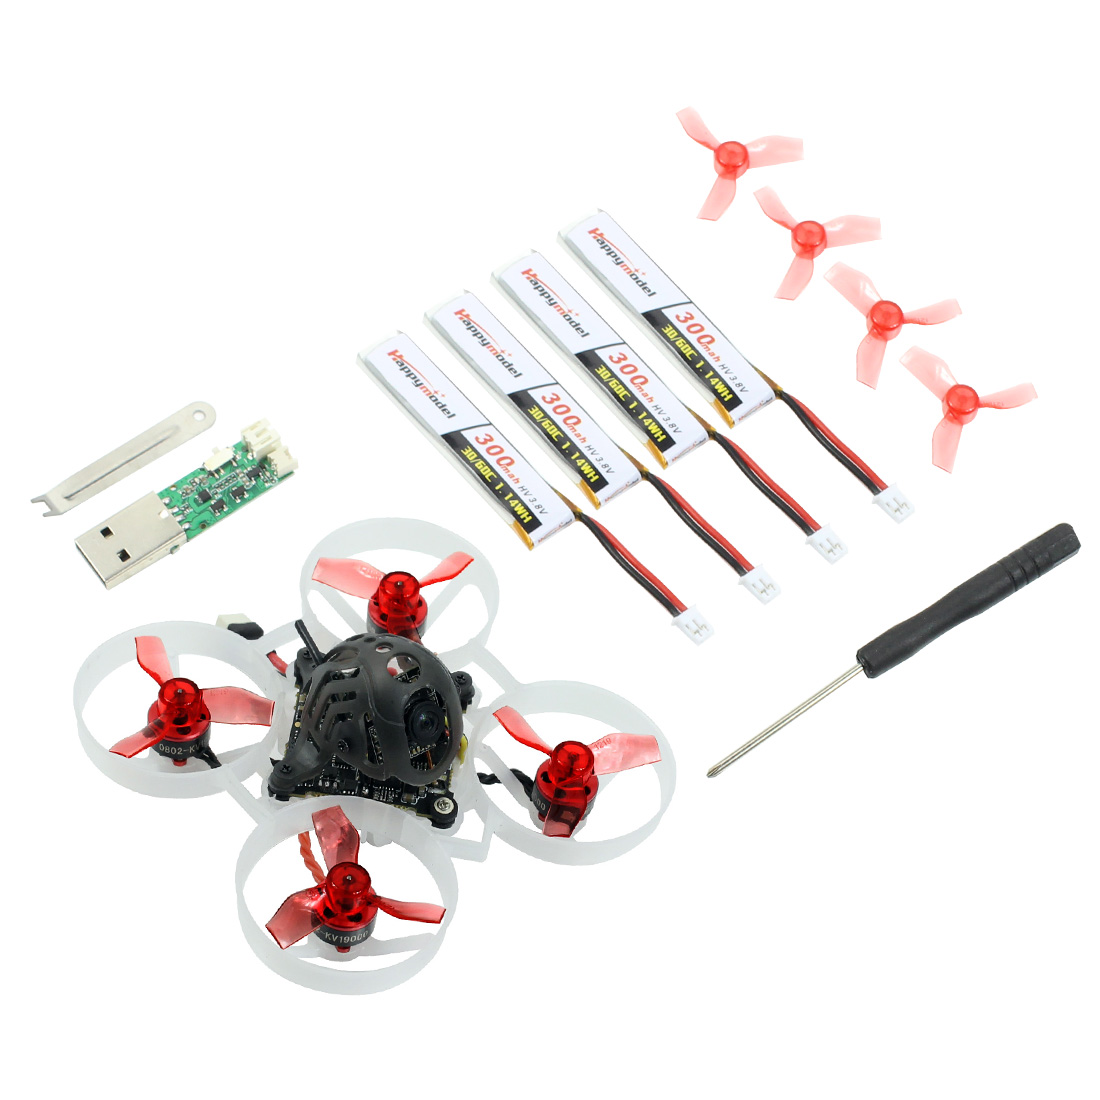 Happymodel Mobula6 Mobula 6 1S 65mm Brushless Bwhoop FPV Racing Drone with 4in1 Crazybee F4 Lite Runcam Nano3 Preorder RC Dron